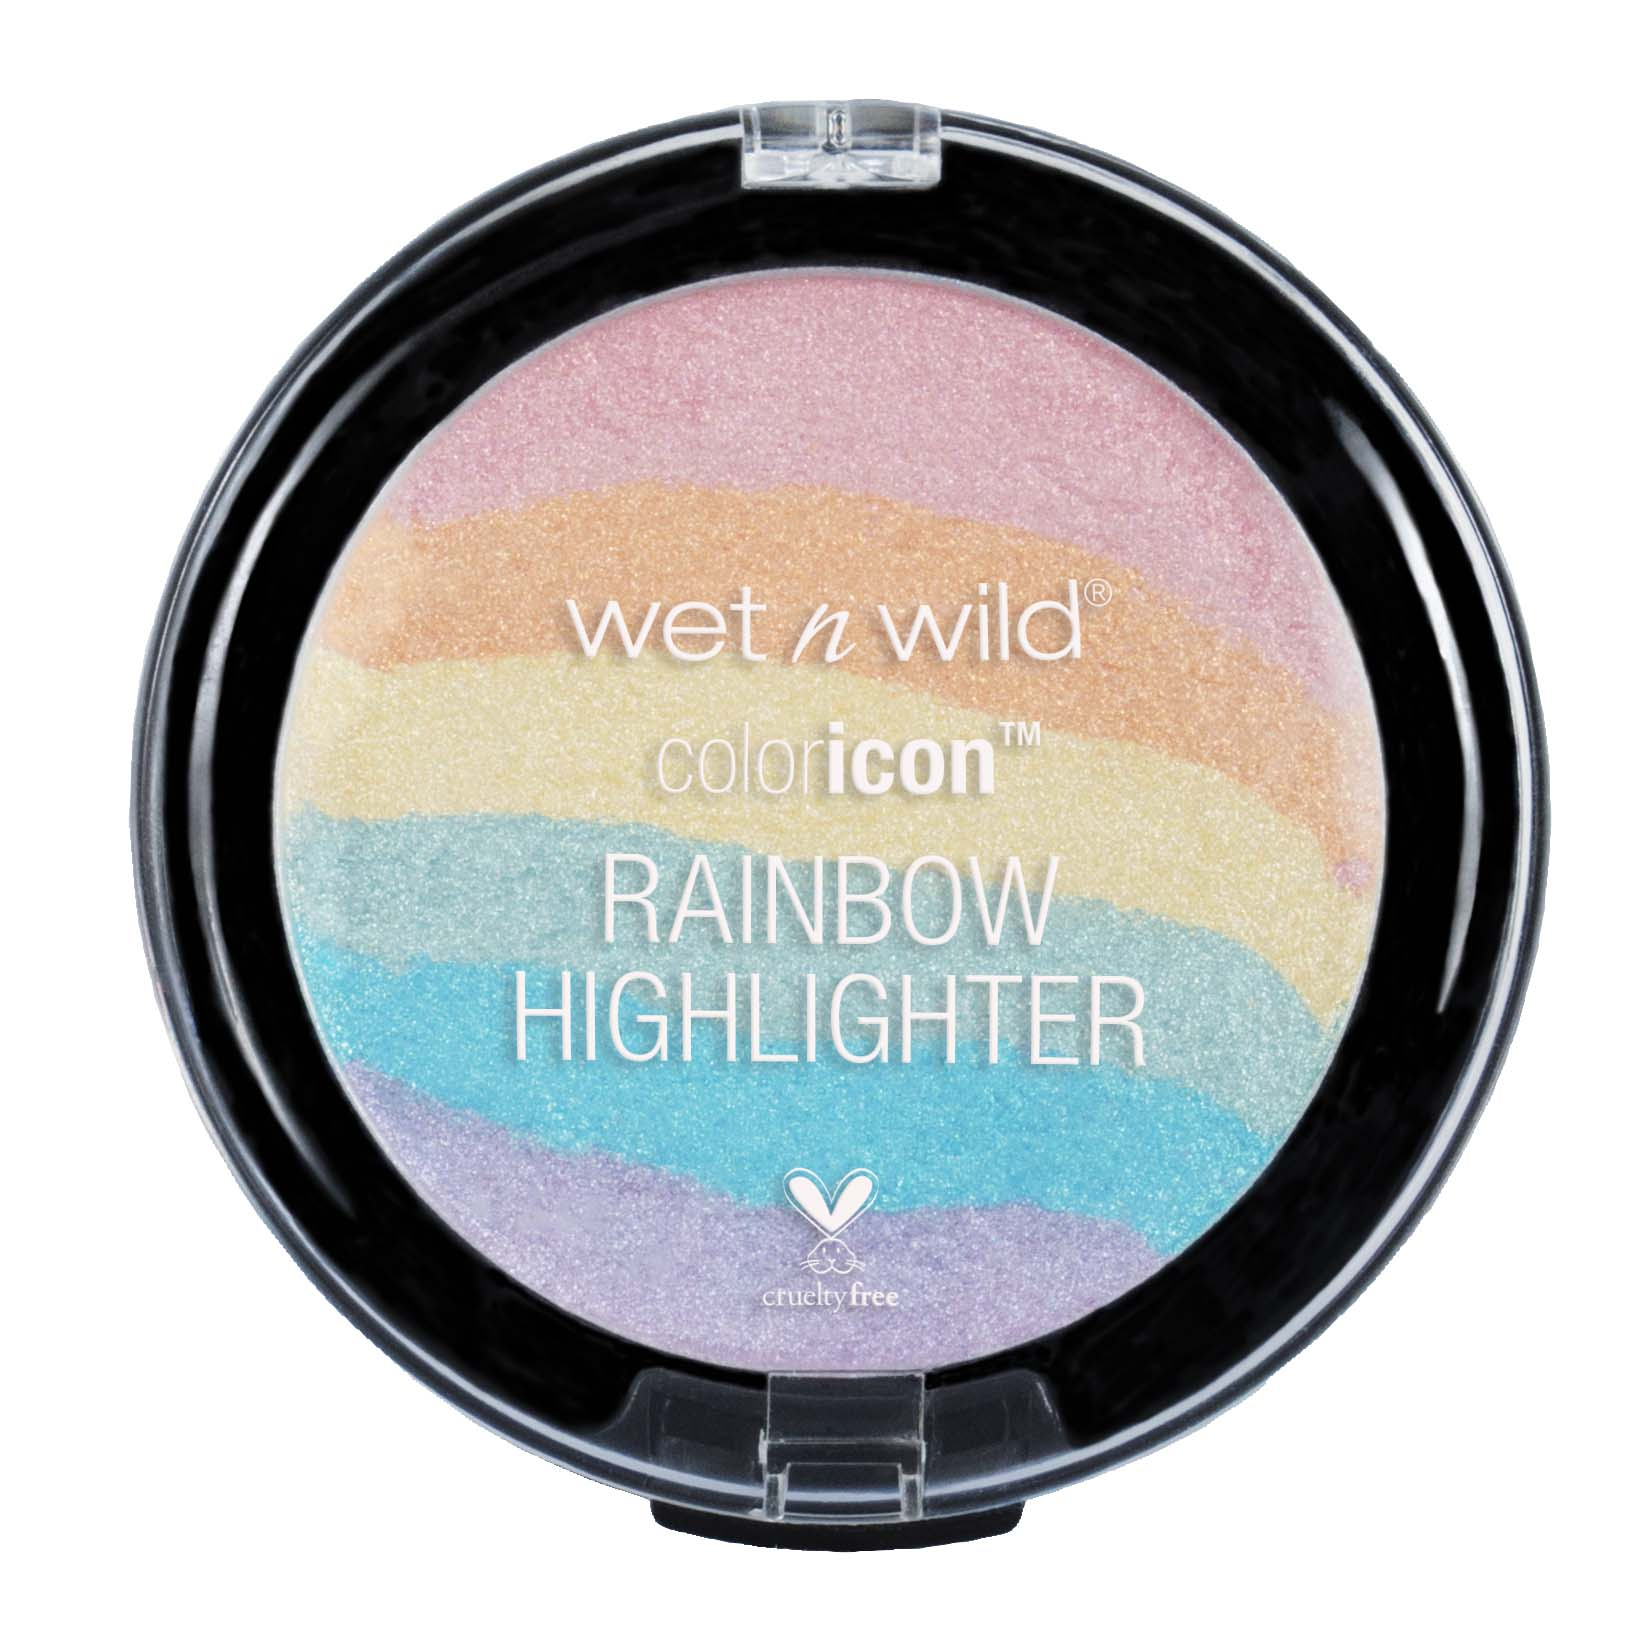 The ColorIcon Rainbow Highlighter by Wet 'n' Wild.